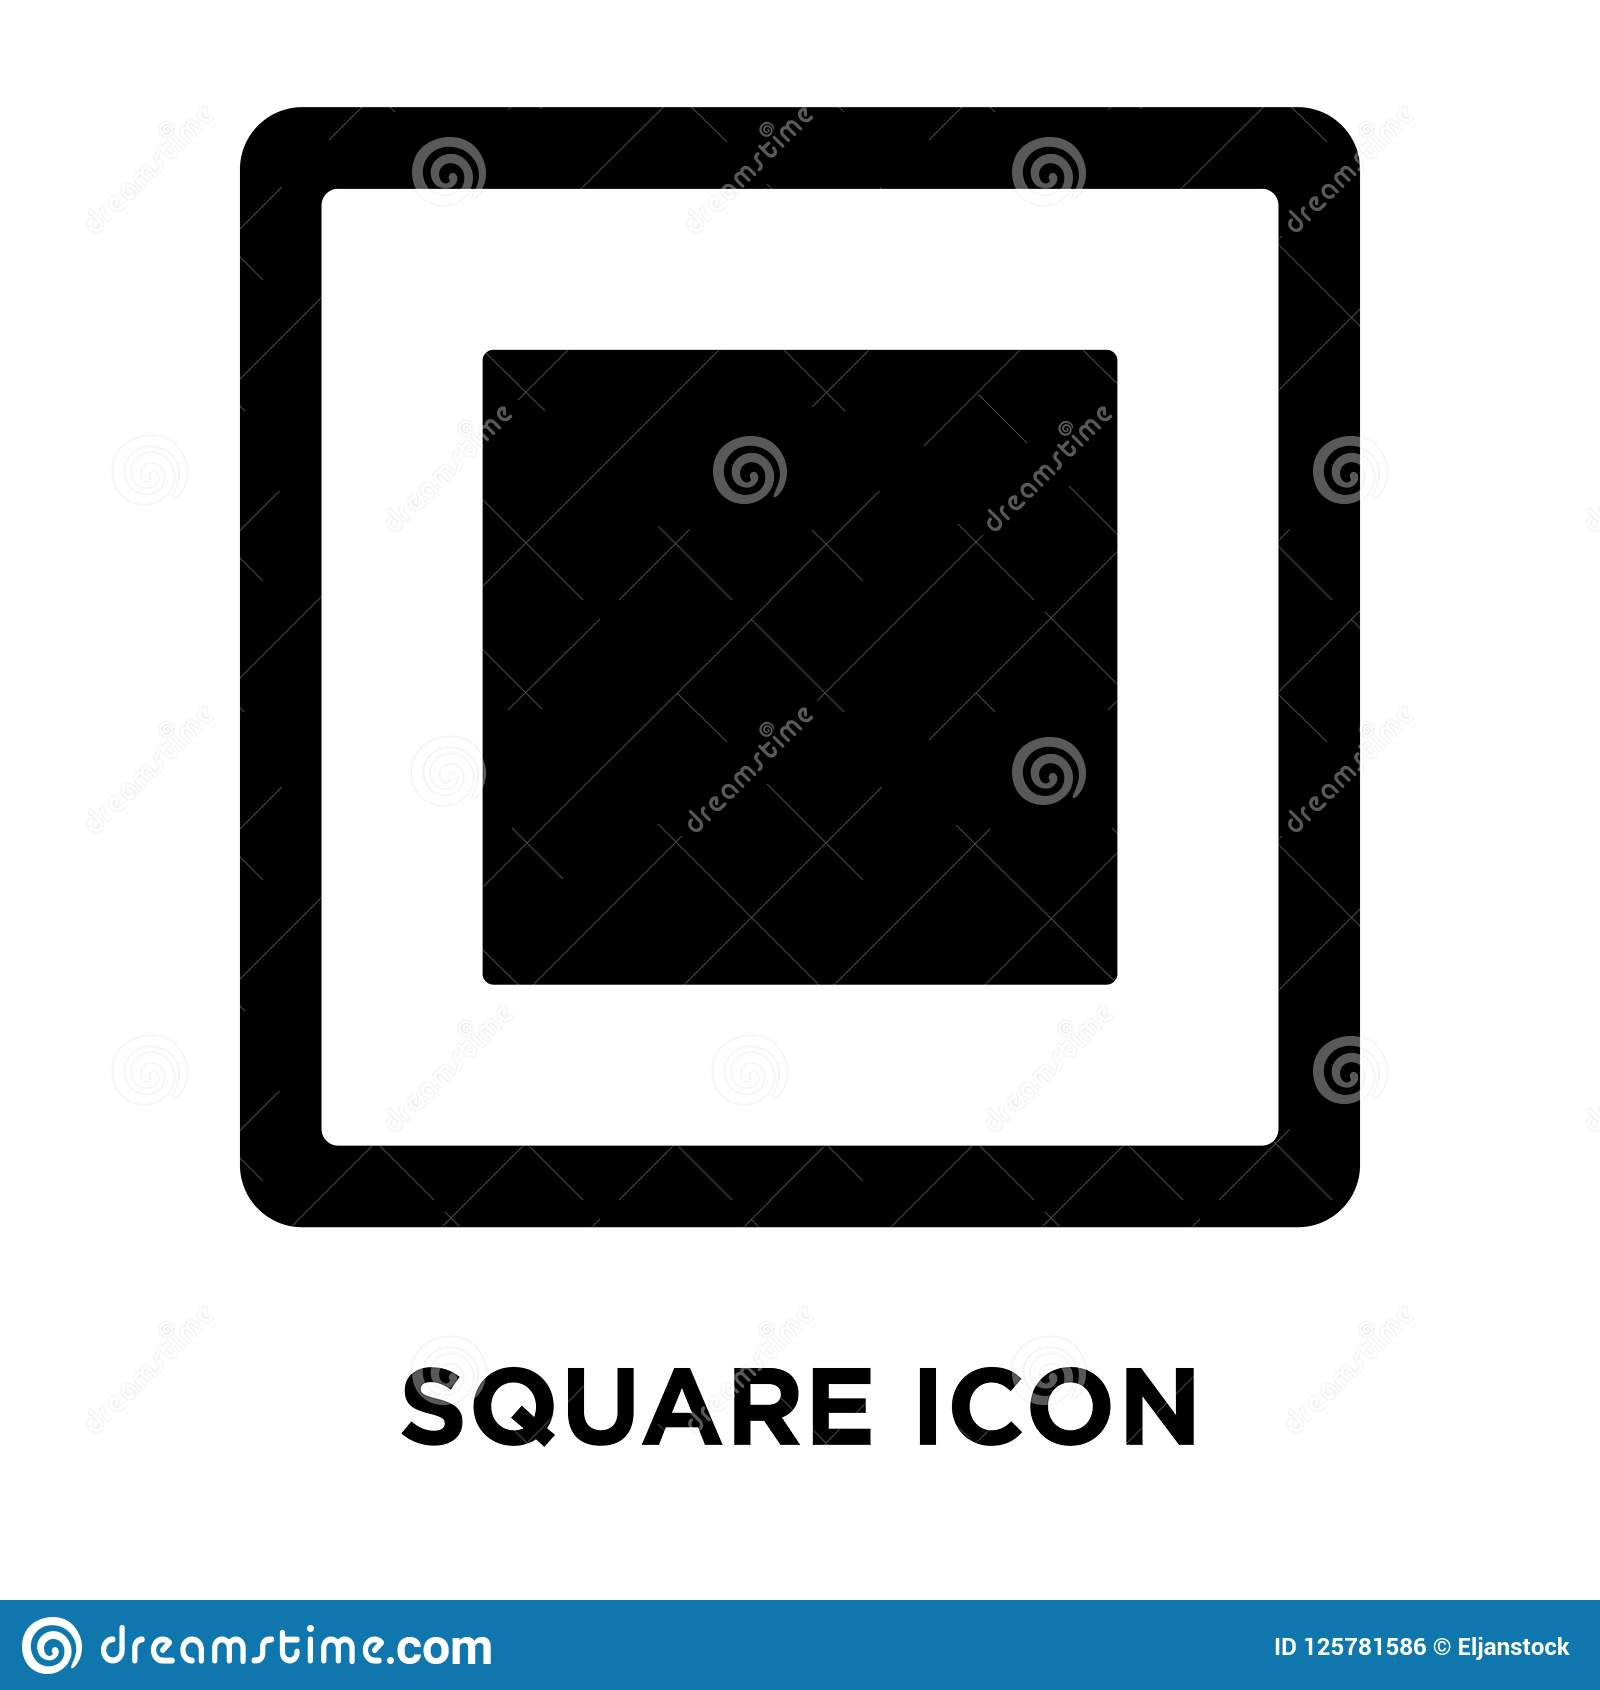 Square icon vector isolated on white background, logo concept of